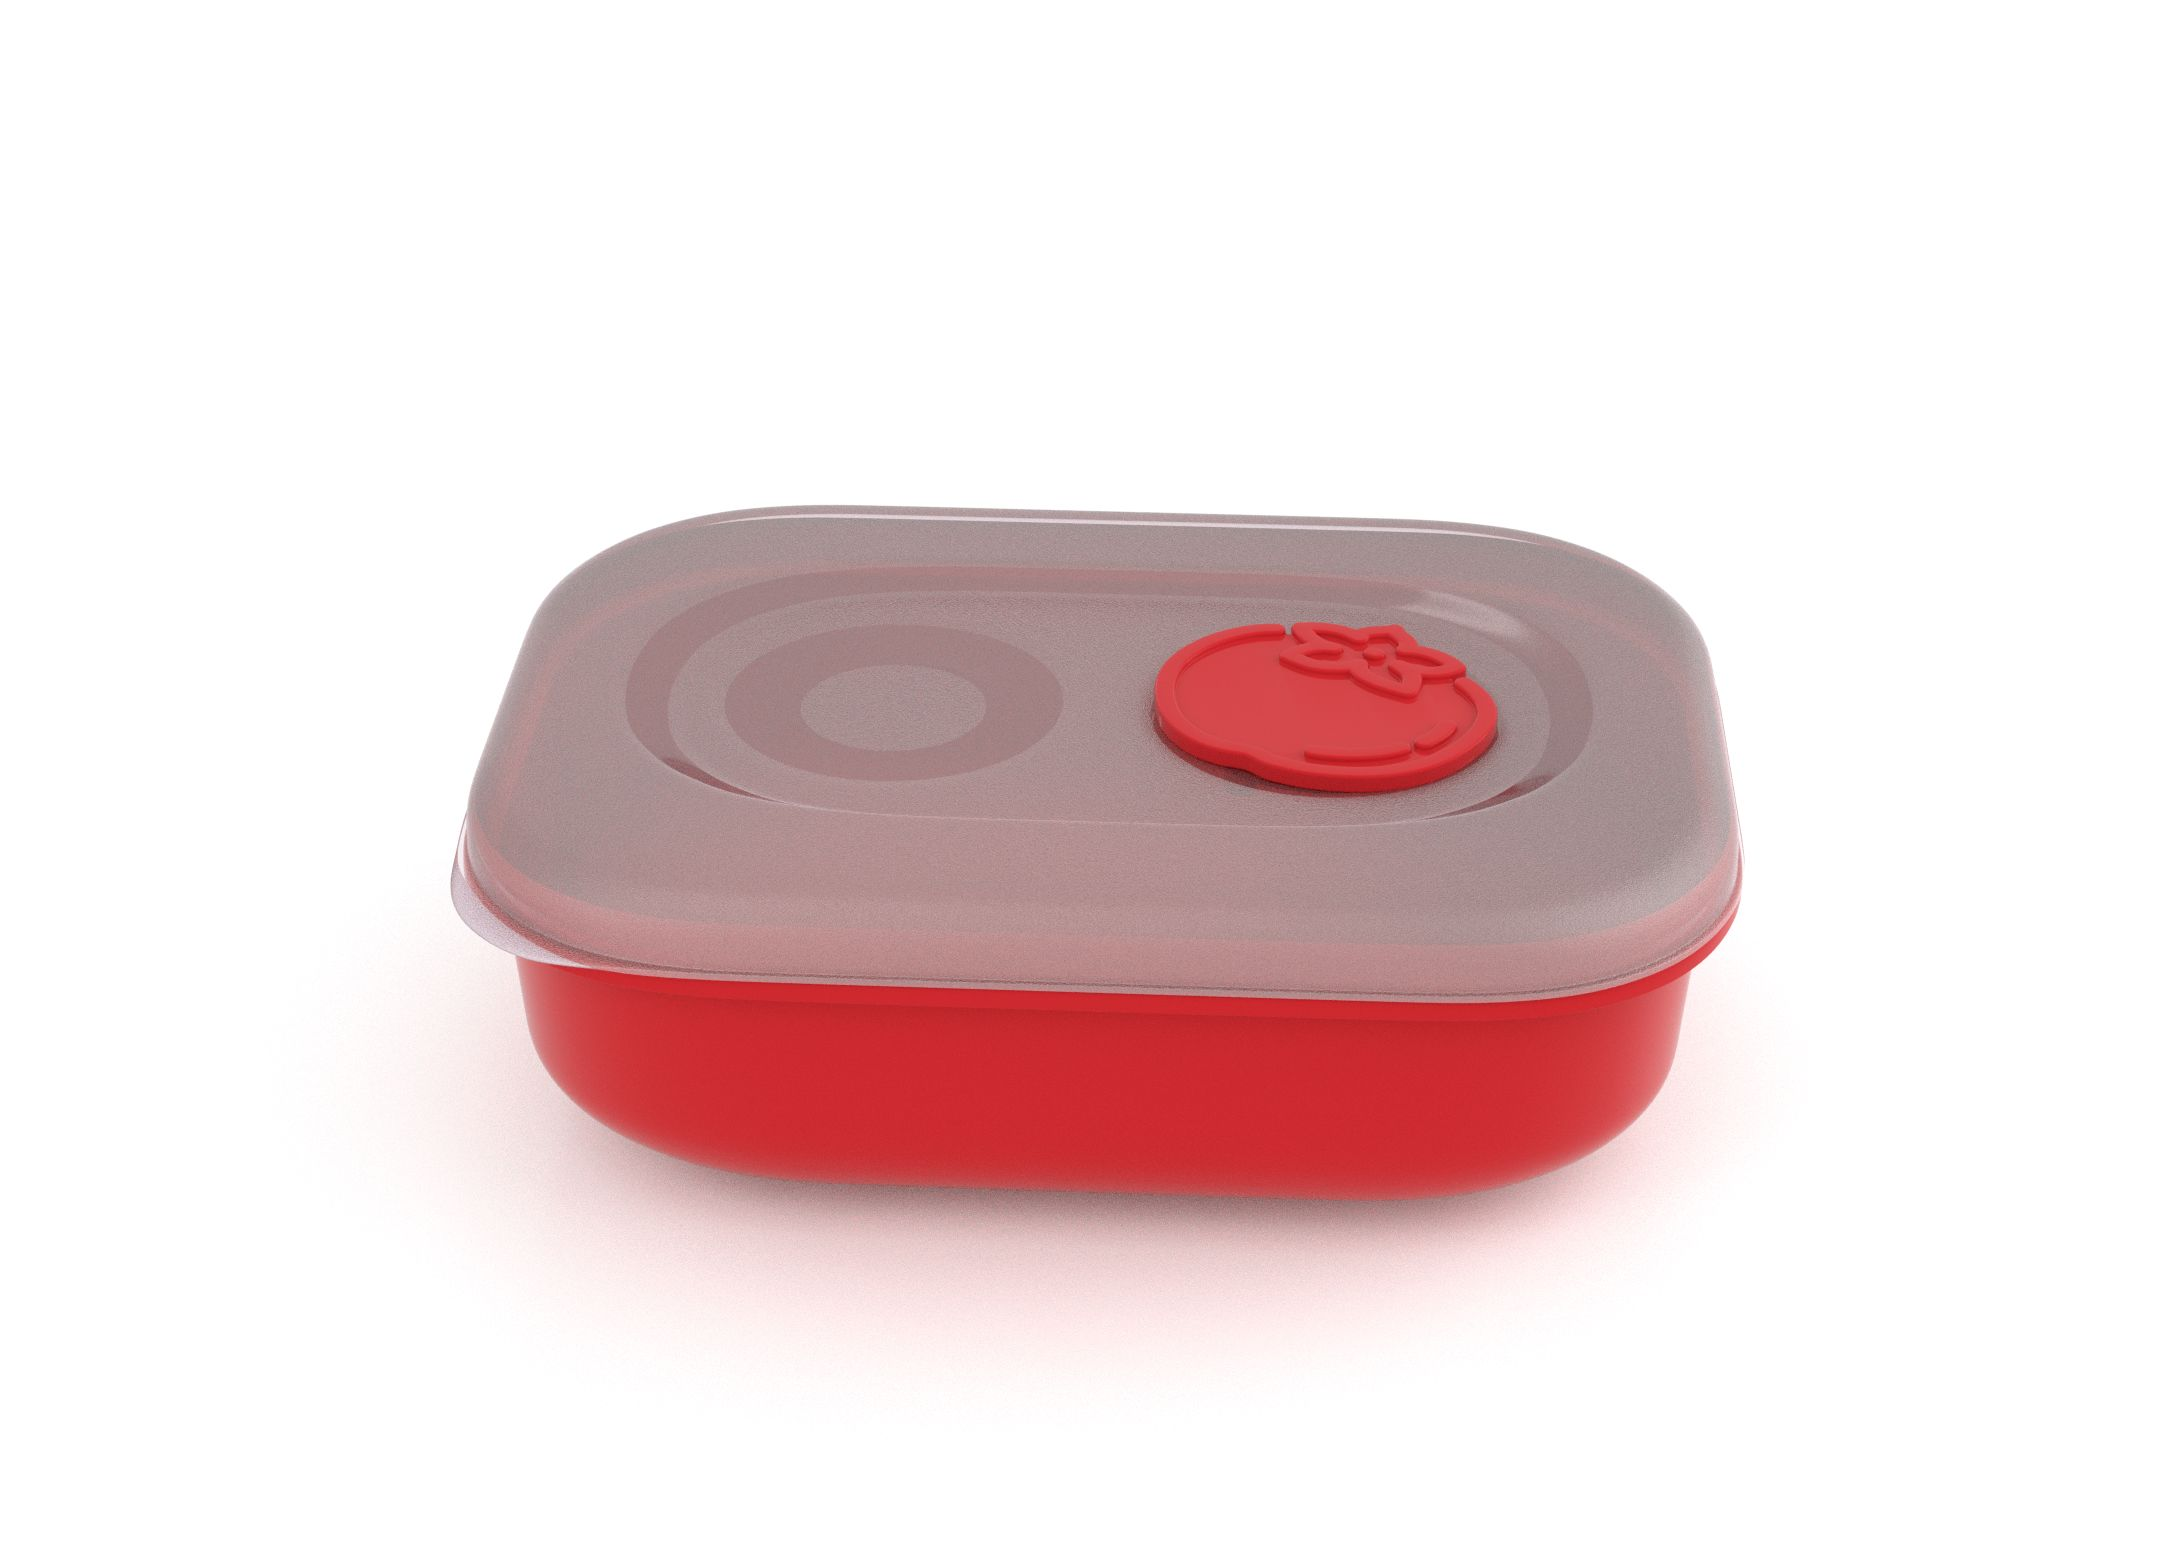 Tama Lock Rectangular Food Container 900ml 9902 with Steam Release Tomato Valve Bright Red